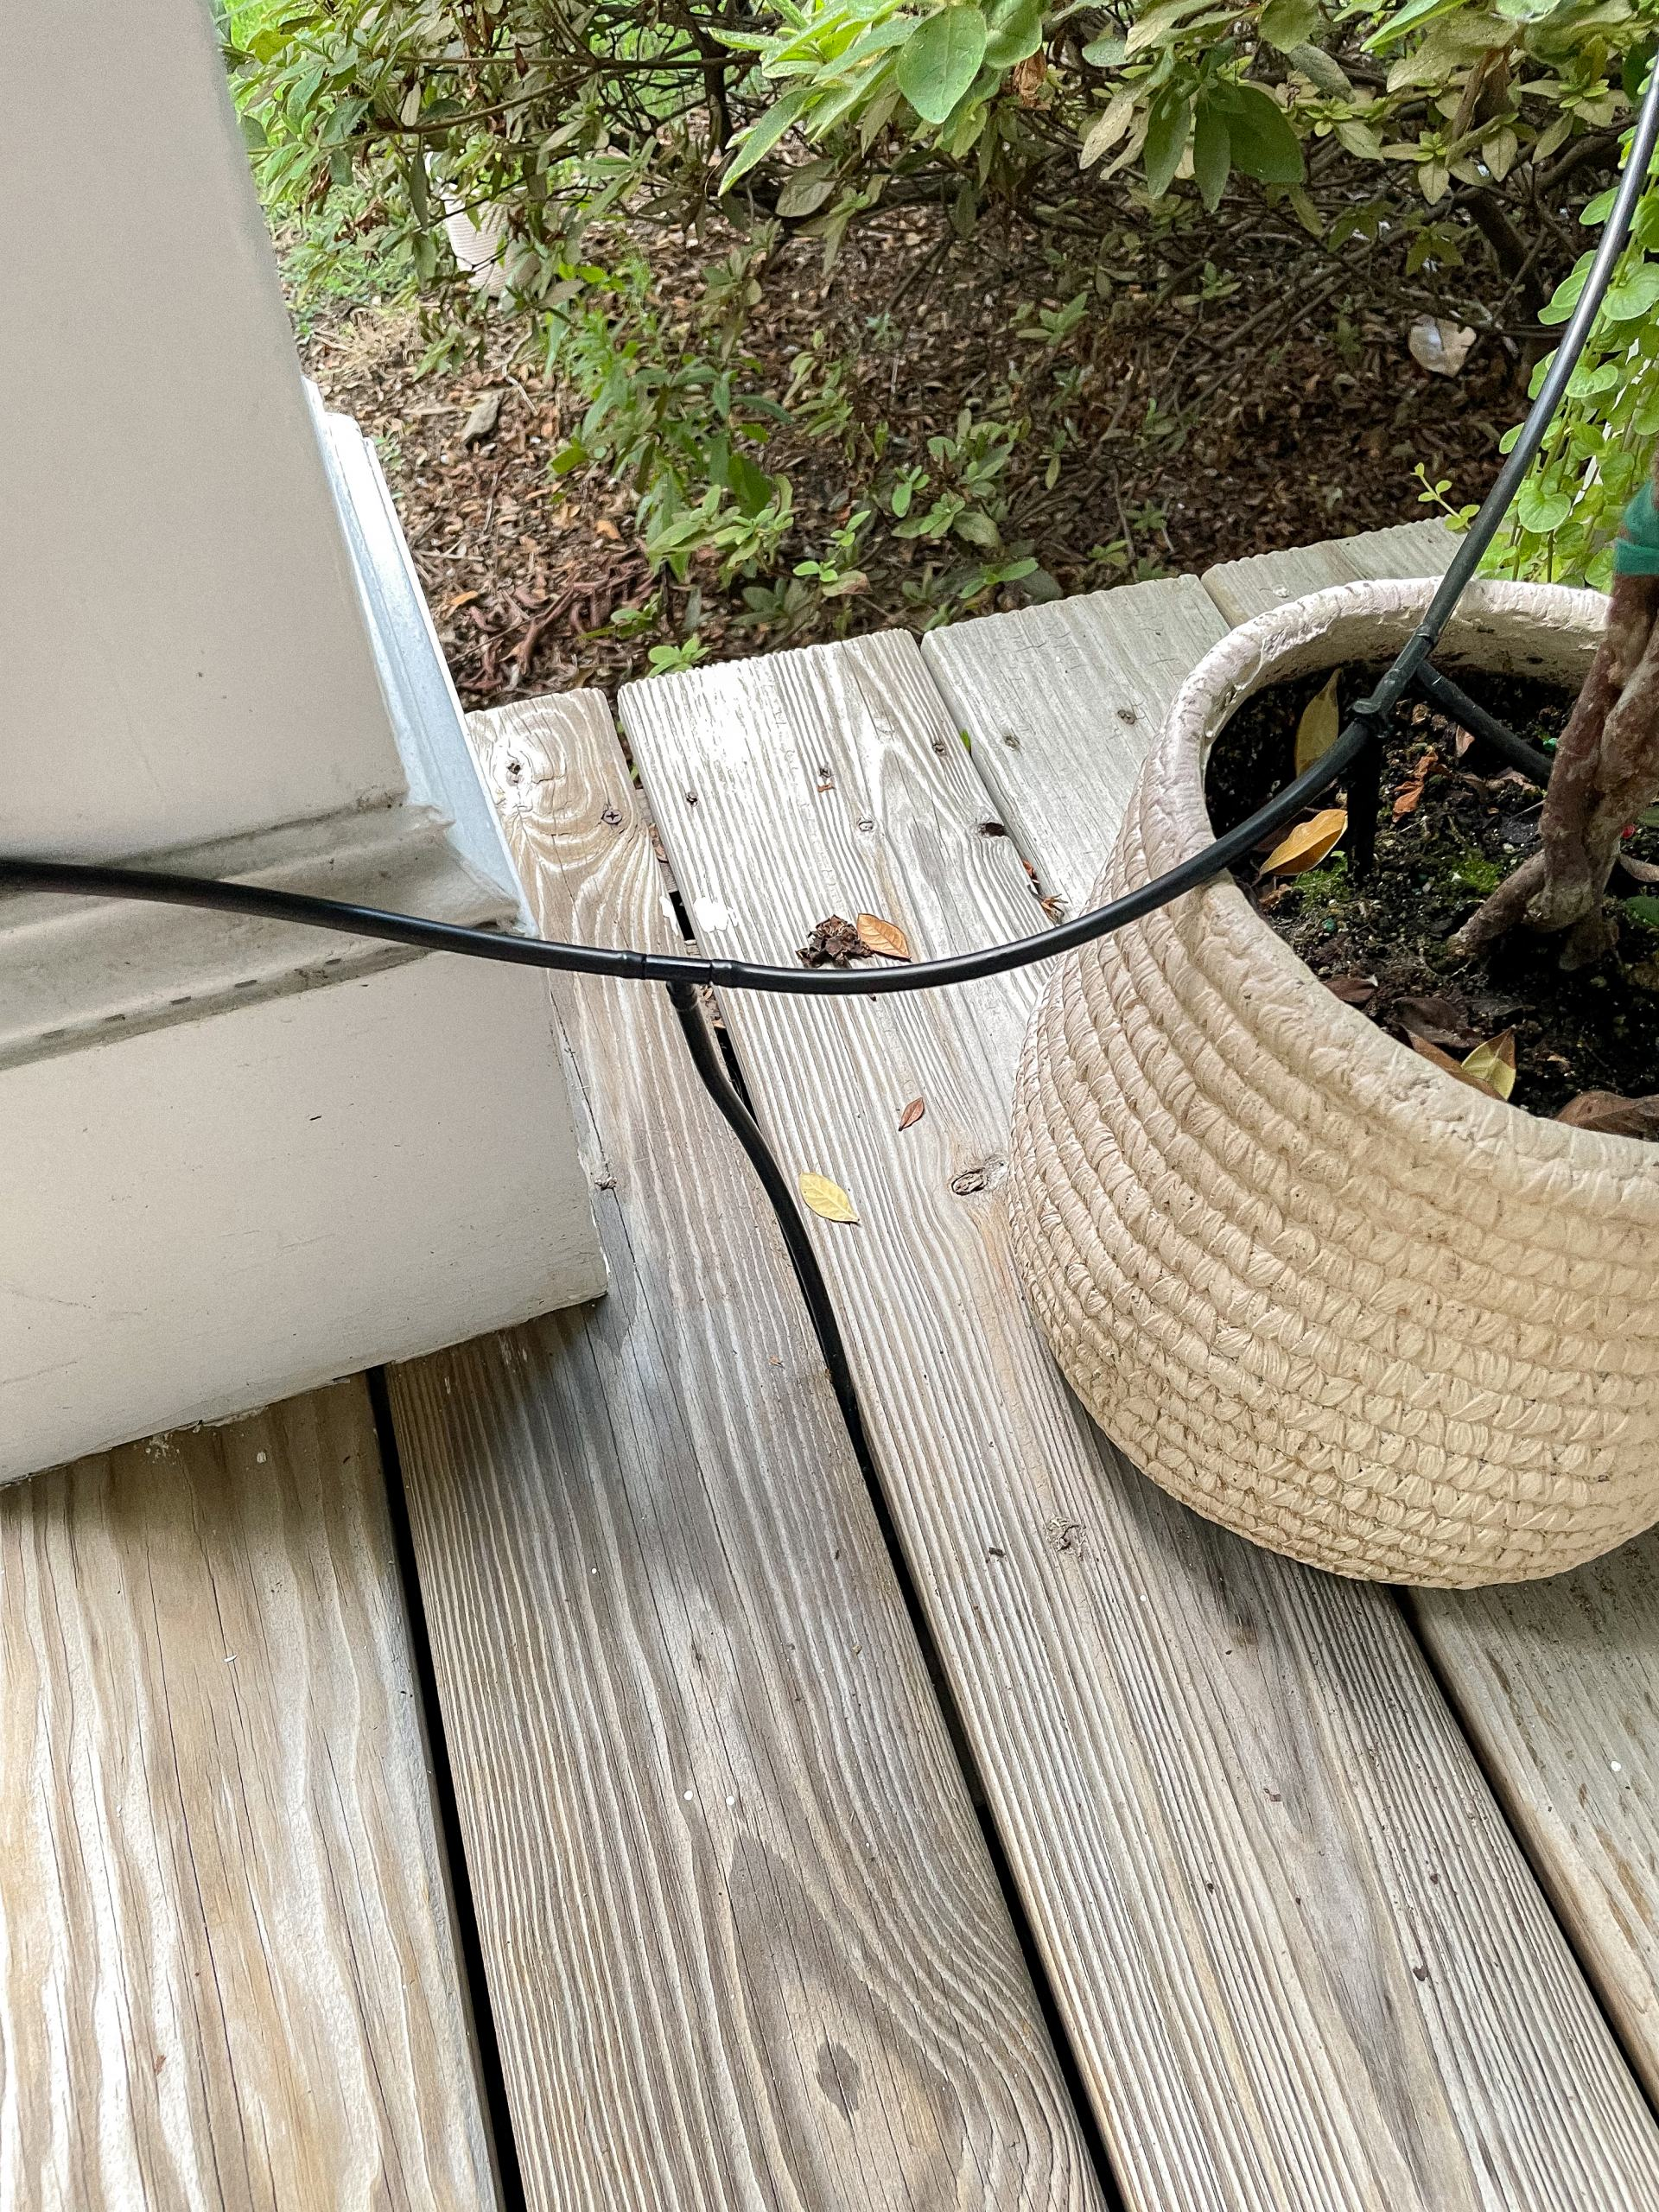 automatic watering system - amazon watering kit - potted plants - gardening tips - diy watering system - boxwoods - hanging boston ferns - flower box planning - craftsman front porch